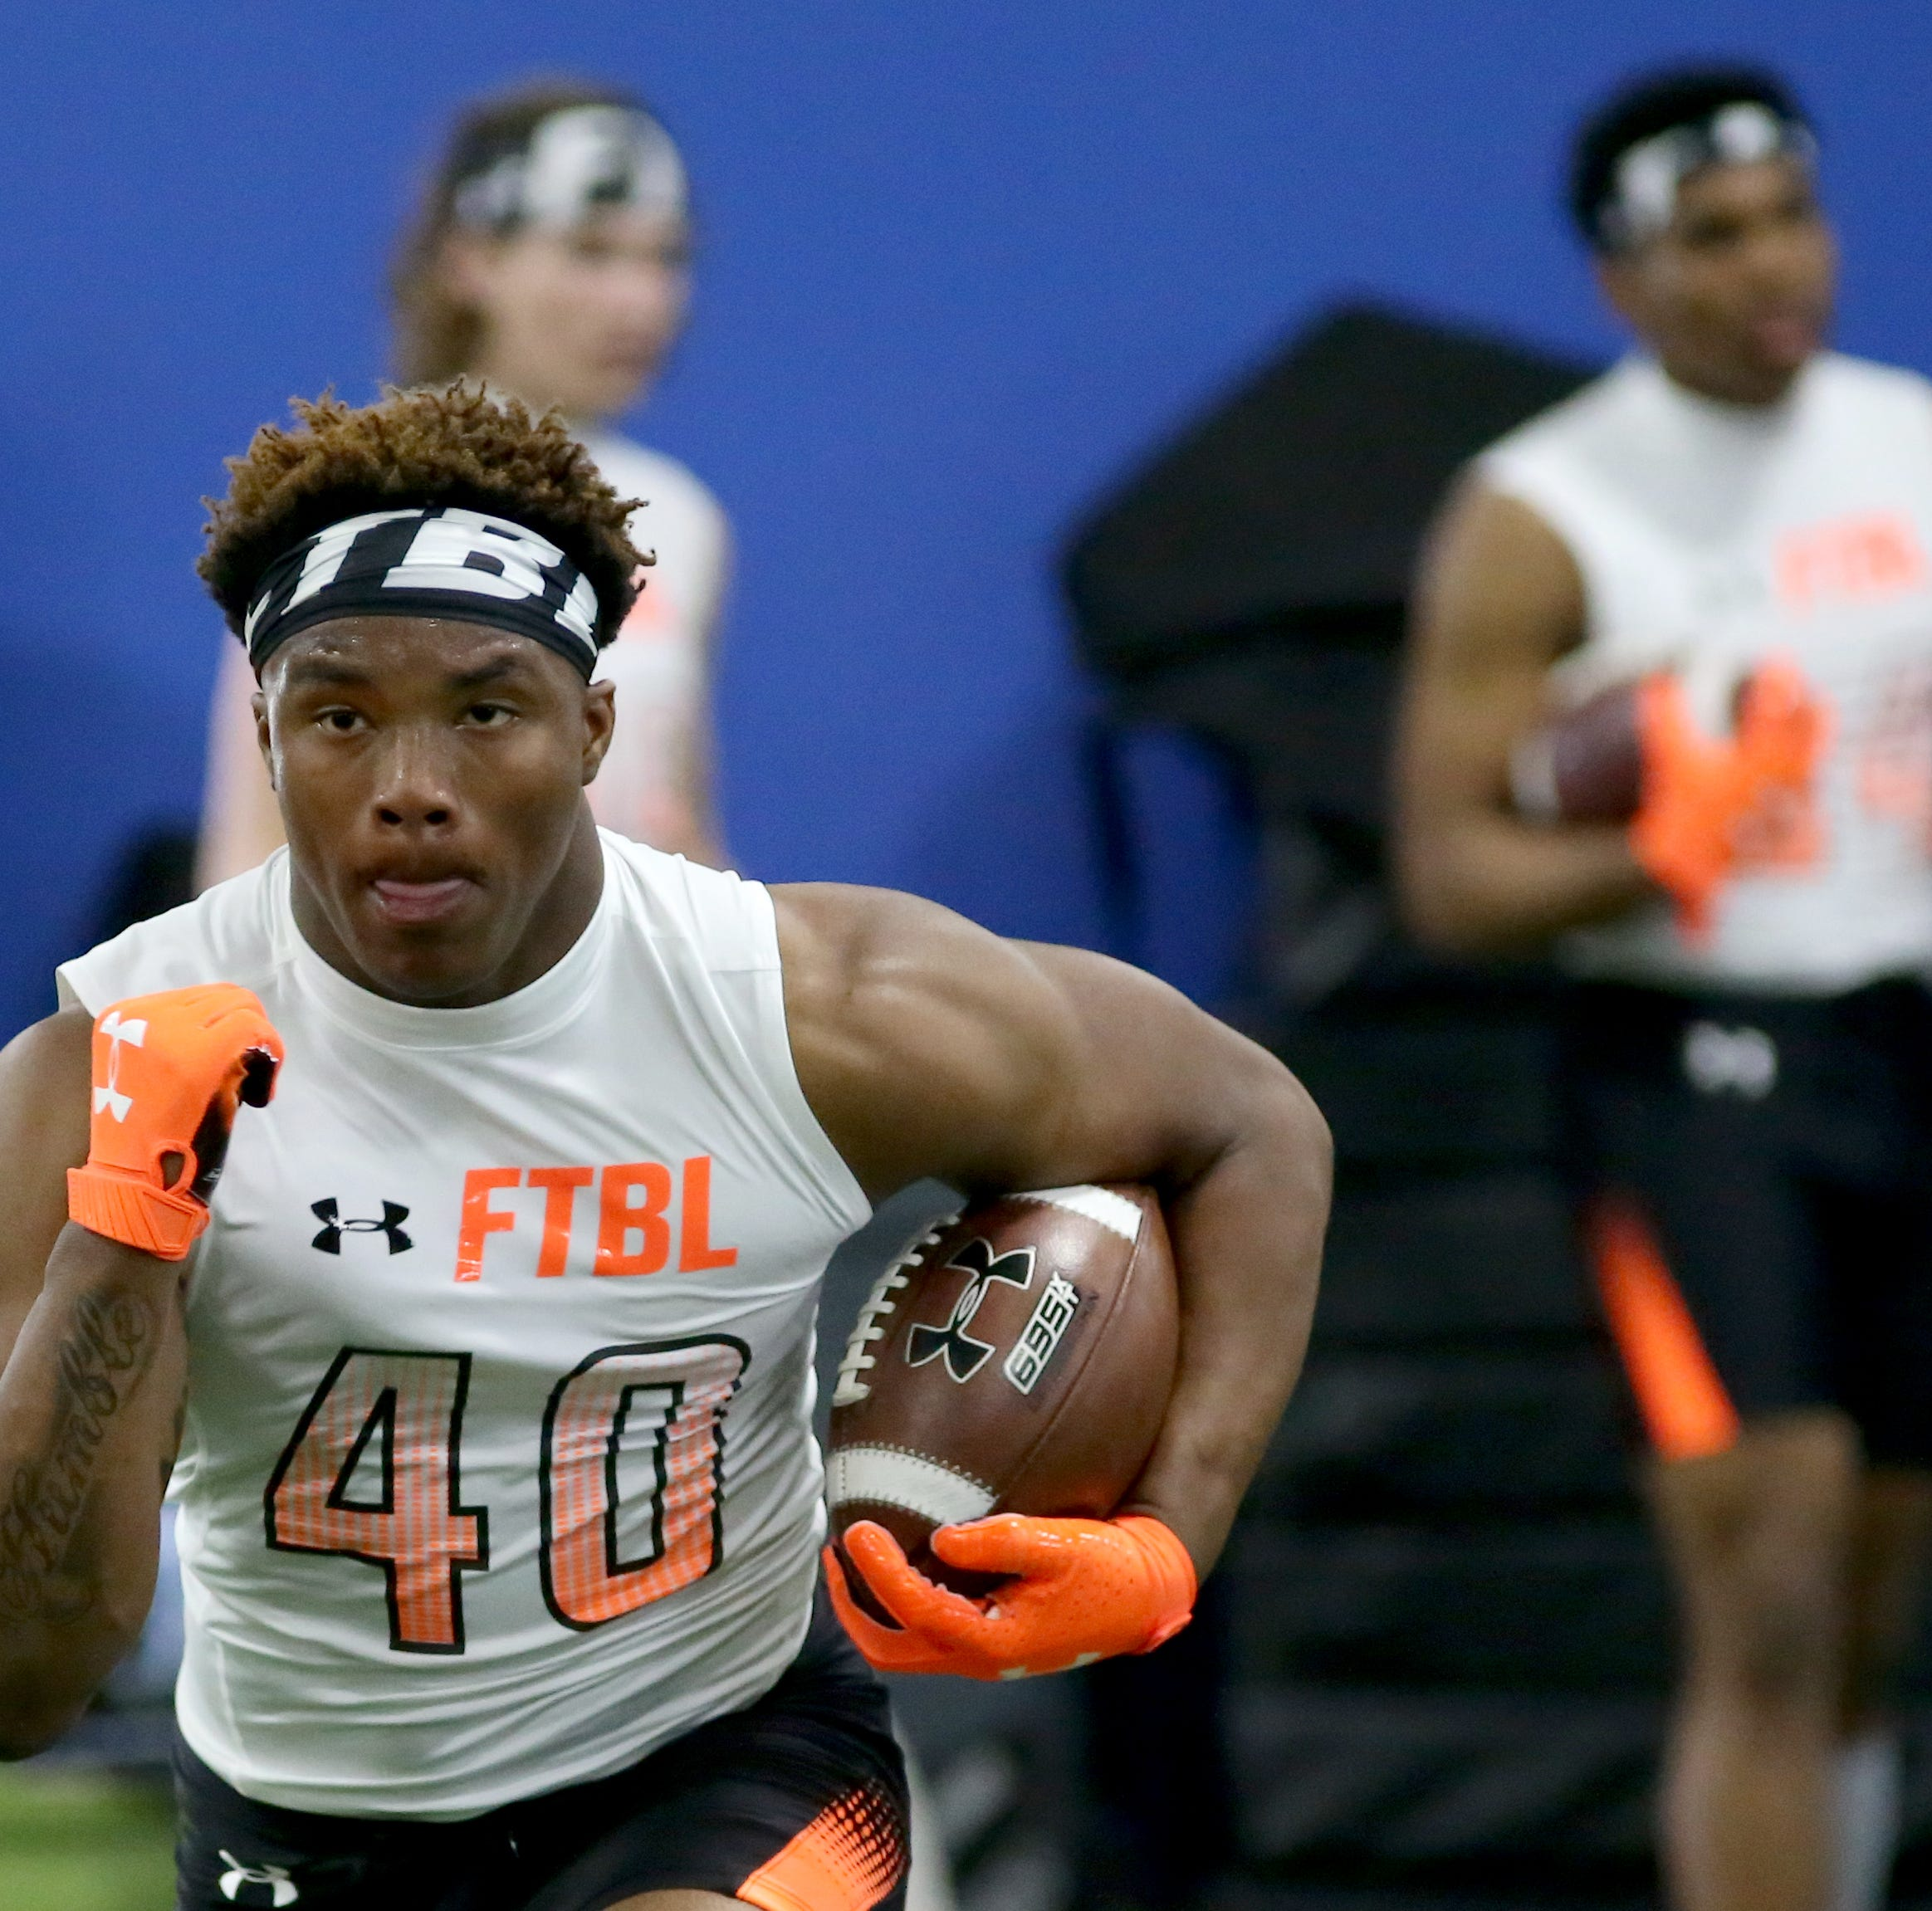 Roger Bacon running back Corey Kiner runs the ball during the Under Armour All-American Camp in Cincinnati, Sunday, April 14, 2019.